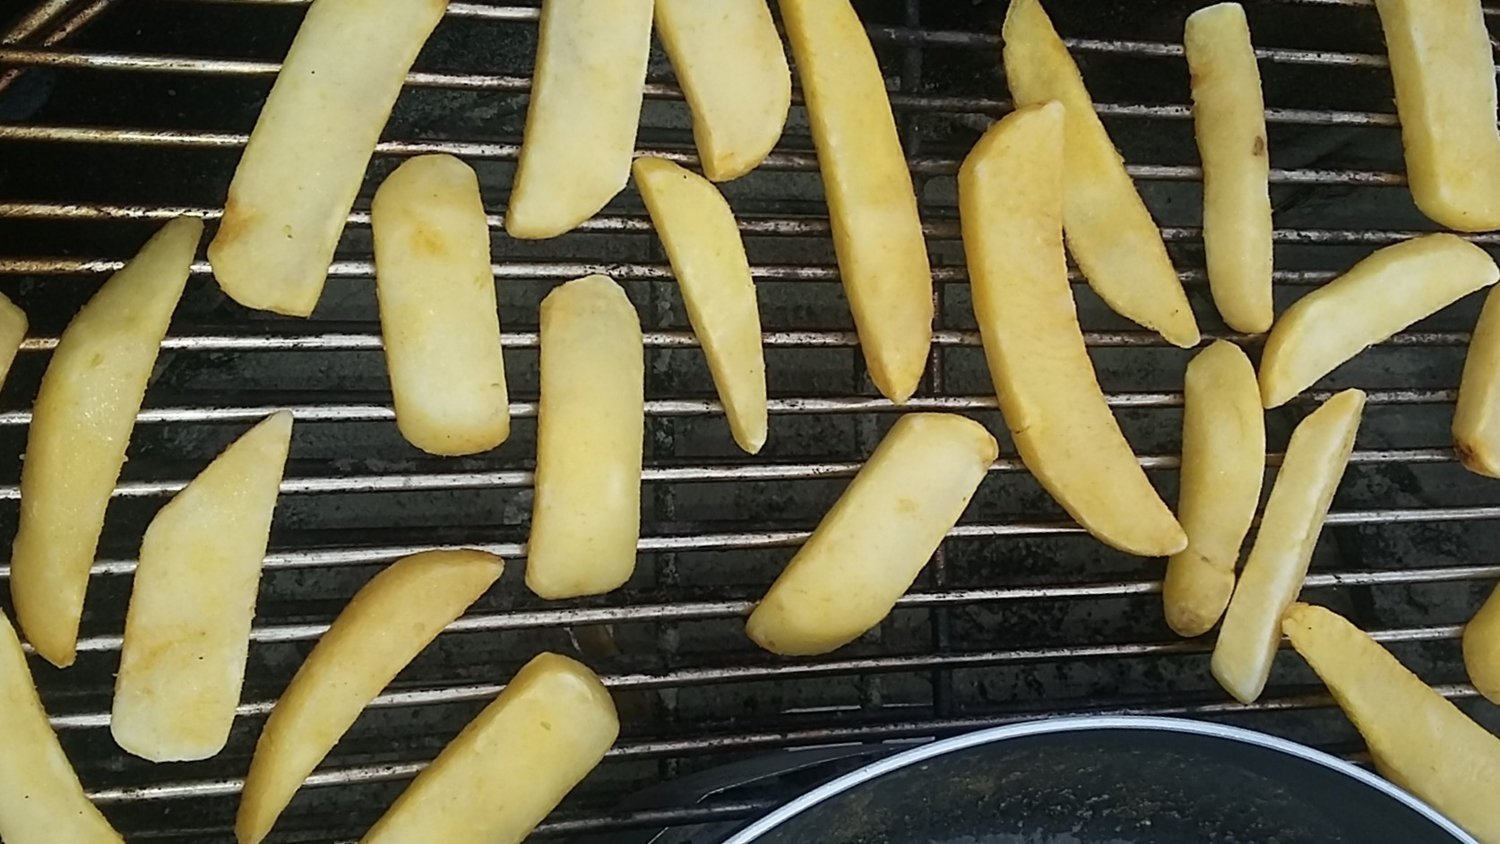 de-frosting frozen french fries on the grill